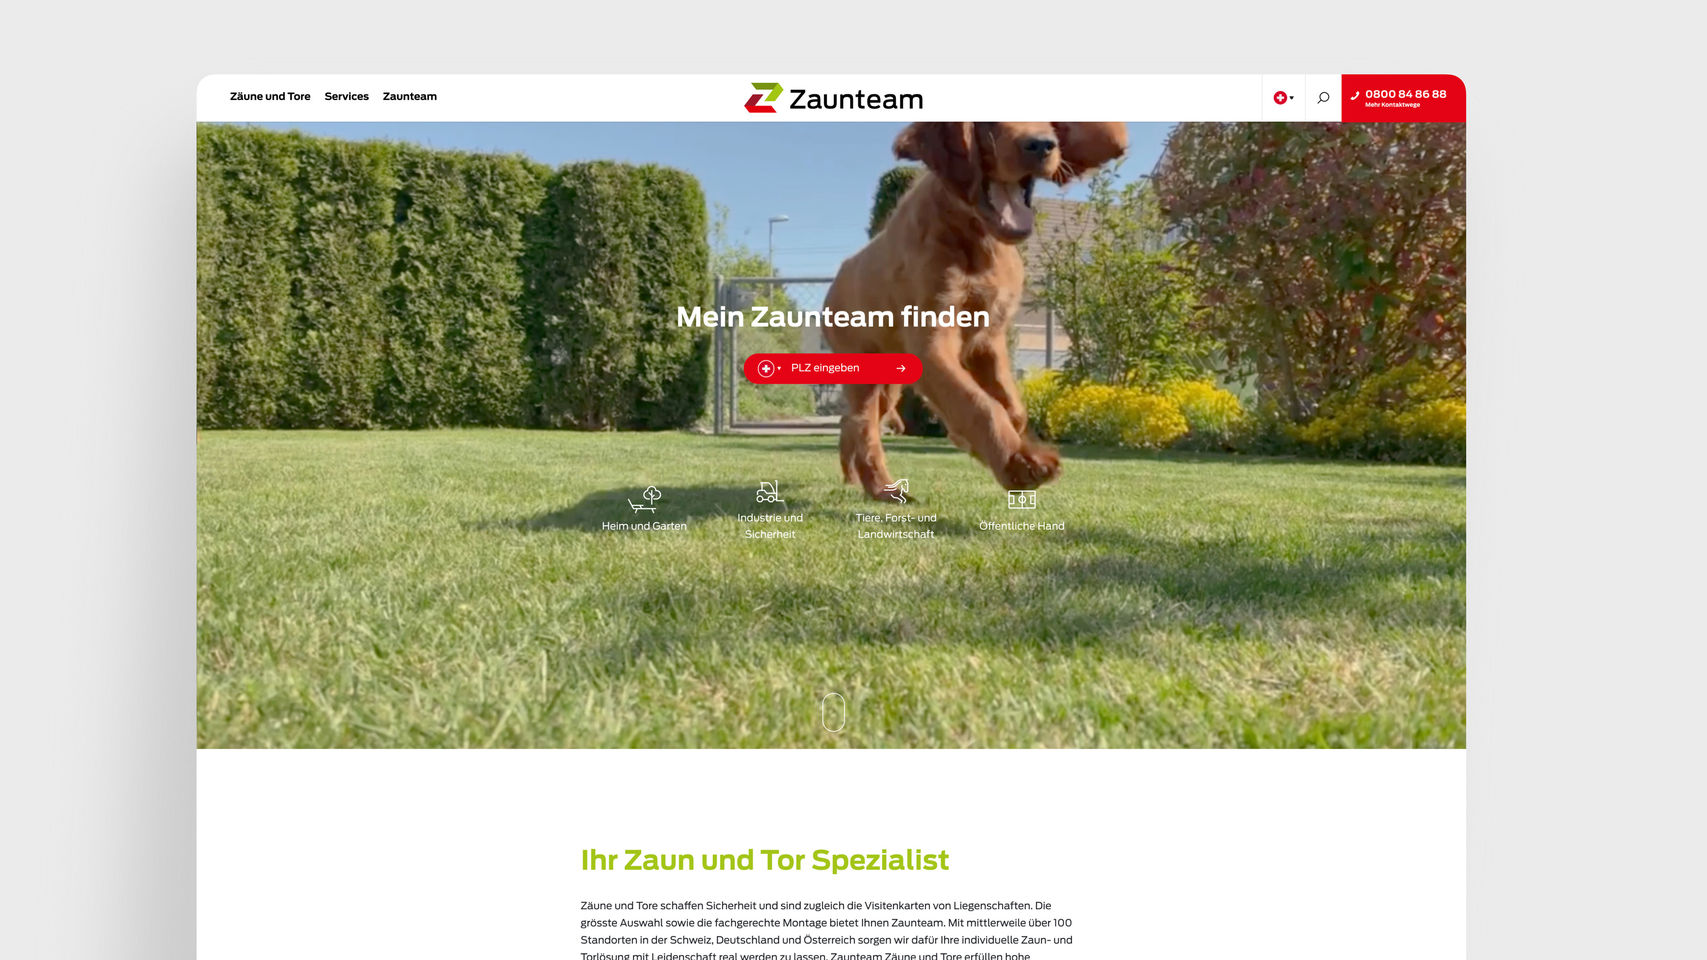 Zaunteam Franchise AG – Startseite Franchise Website